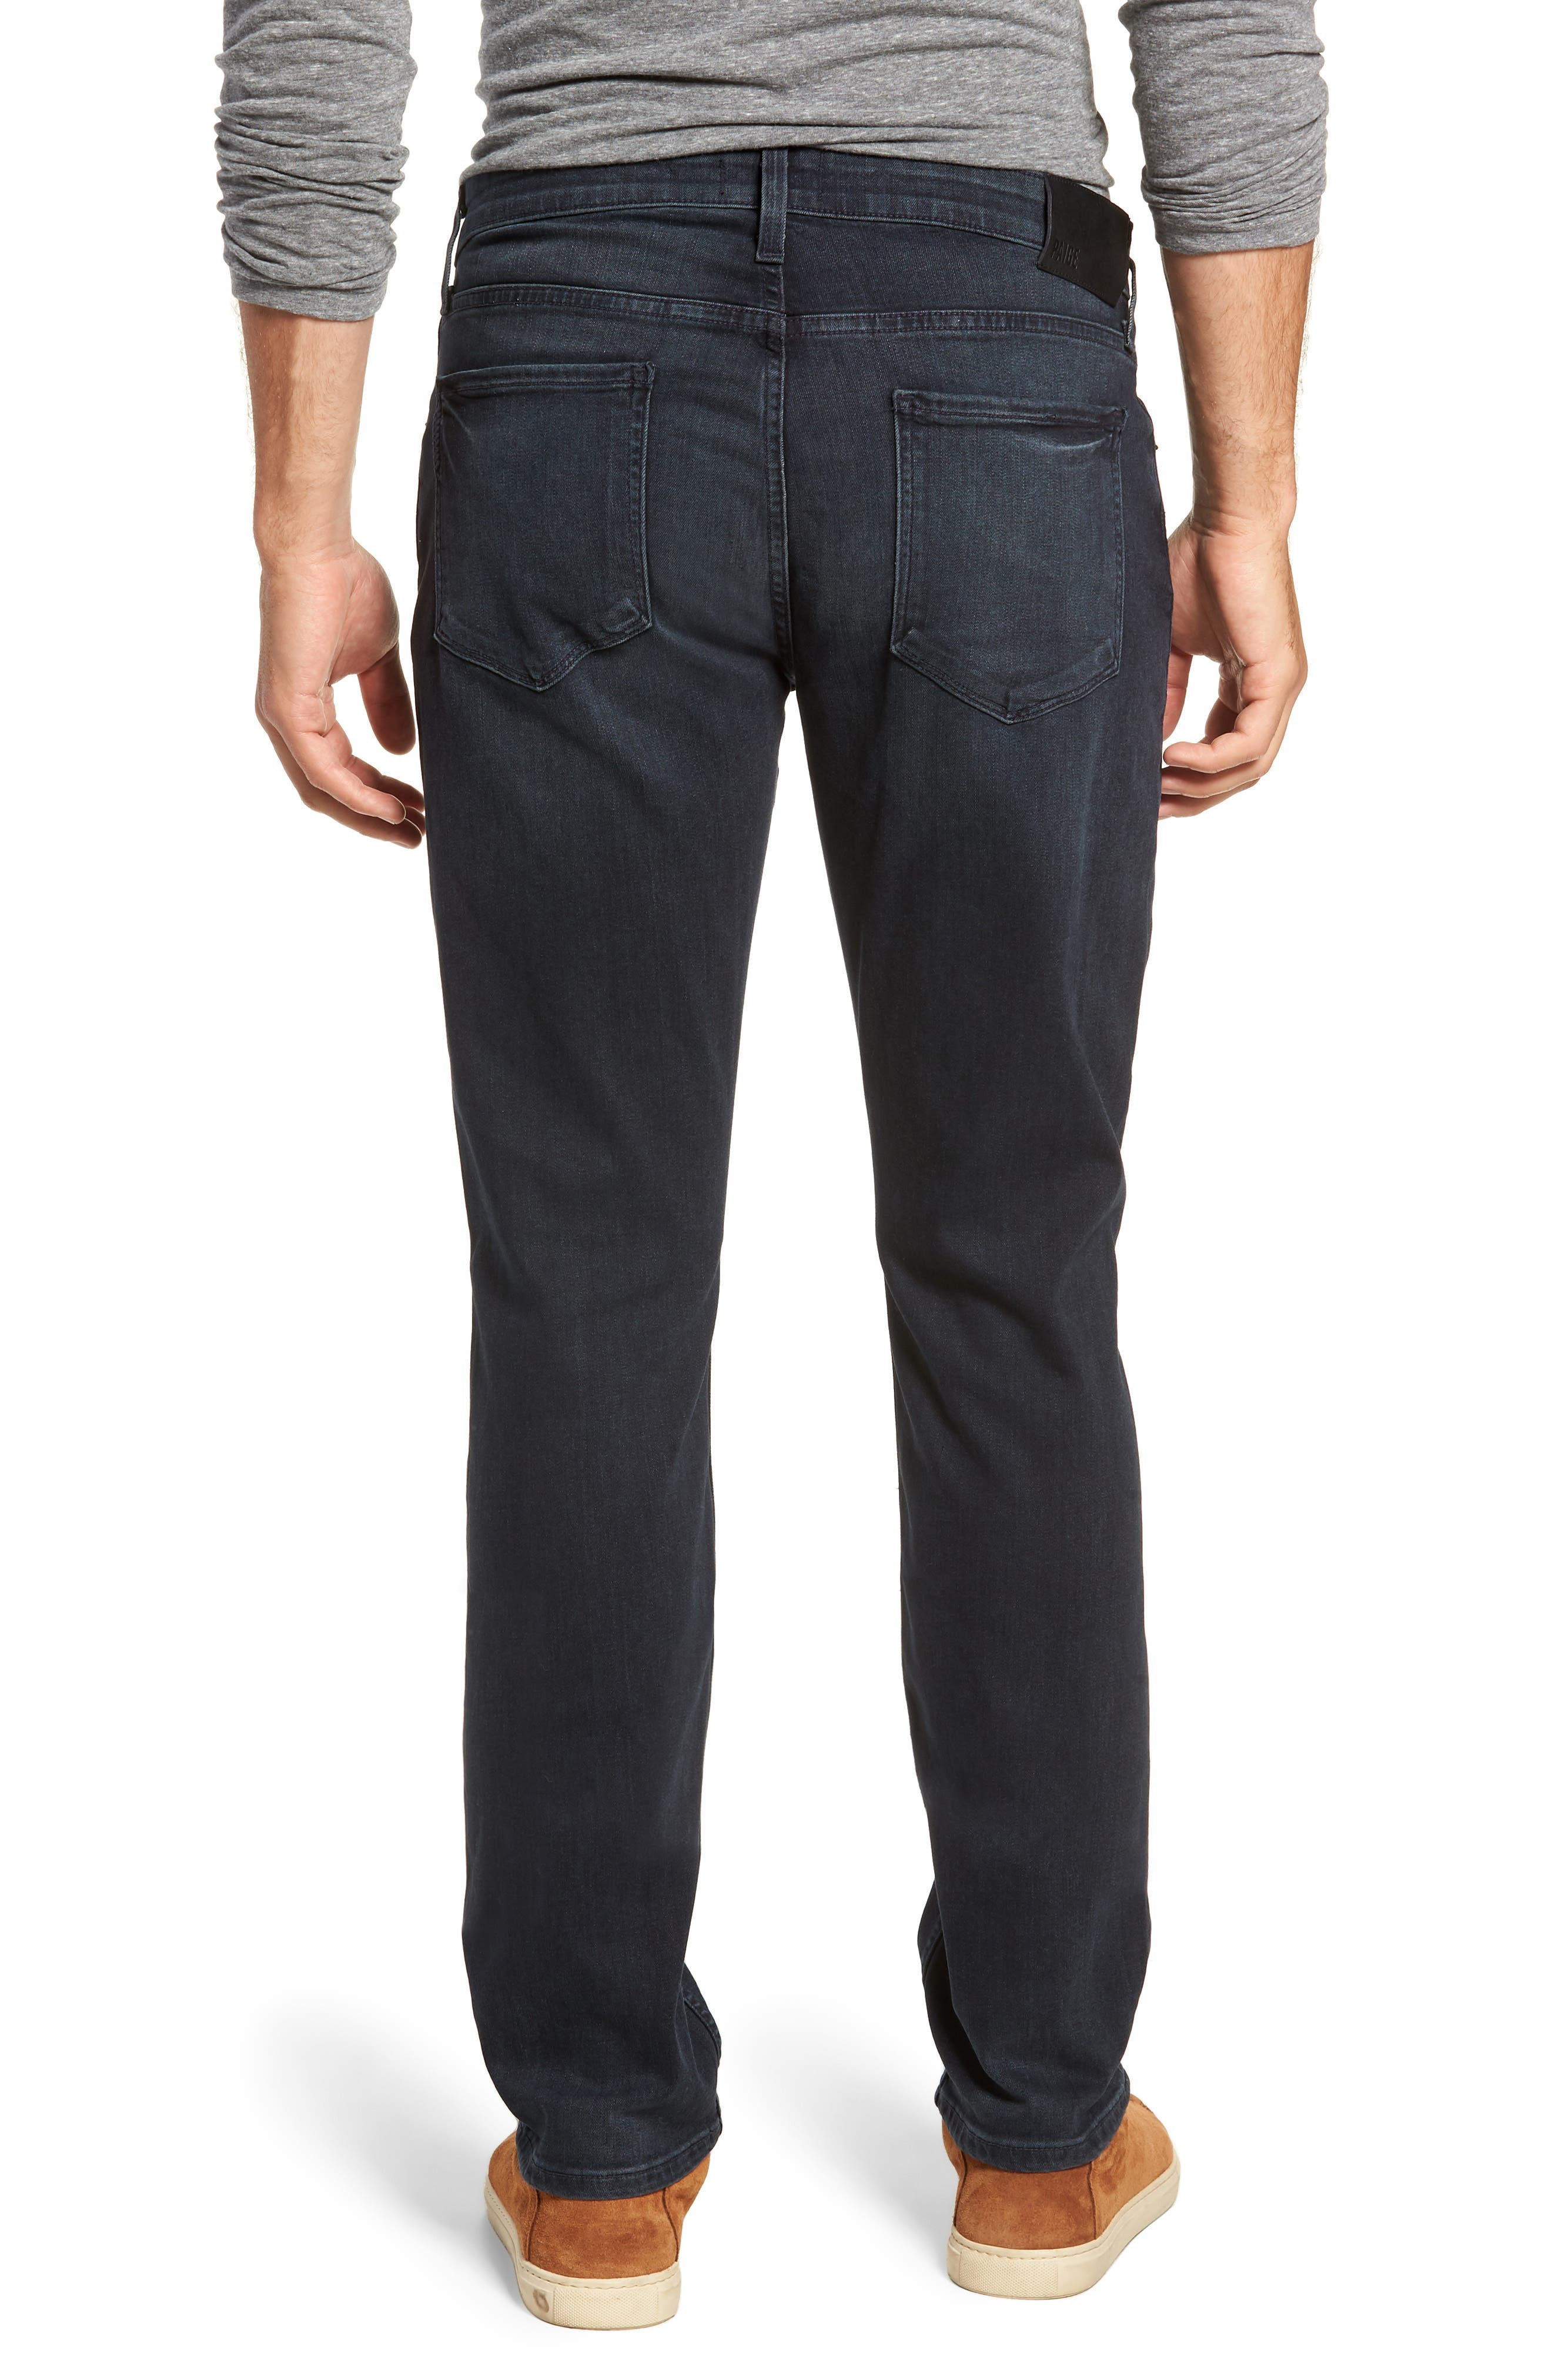 Transcend - Federal Slim Fit Straight Leg Jeans,                             Alternate thumbnail 2, color,                             BECKETT